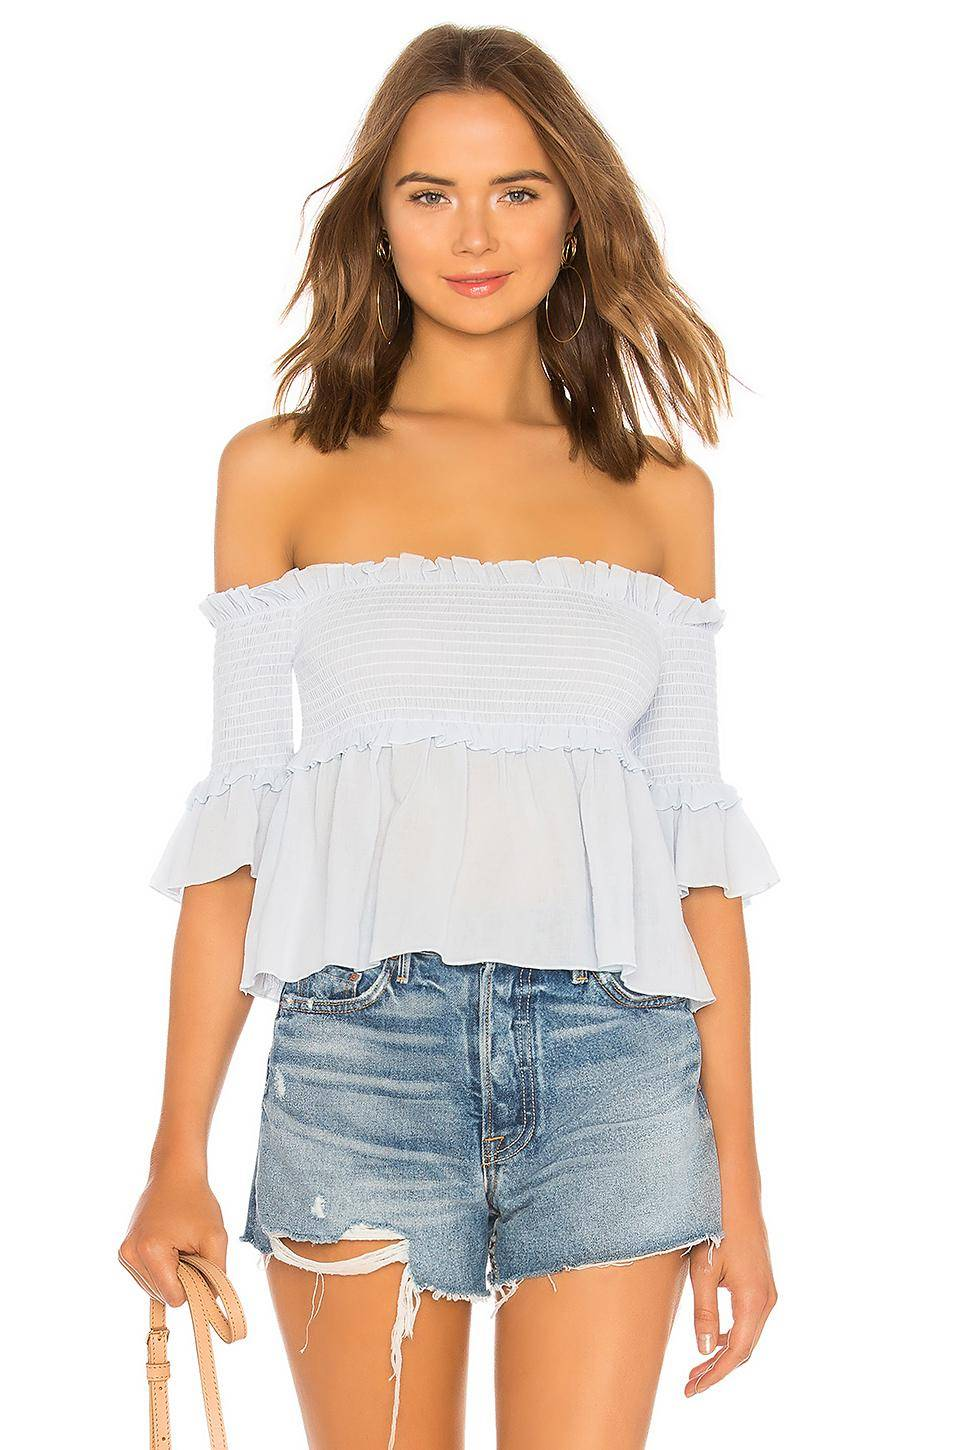 Stylish Women Outfits for under $100 (2)